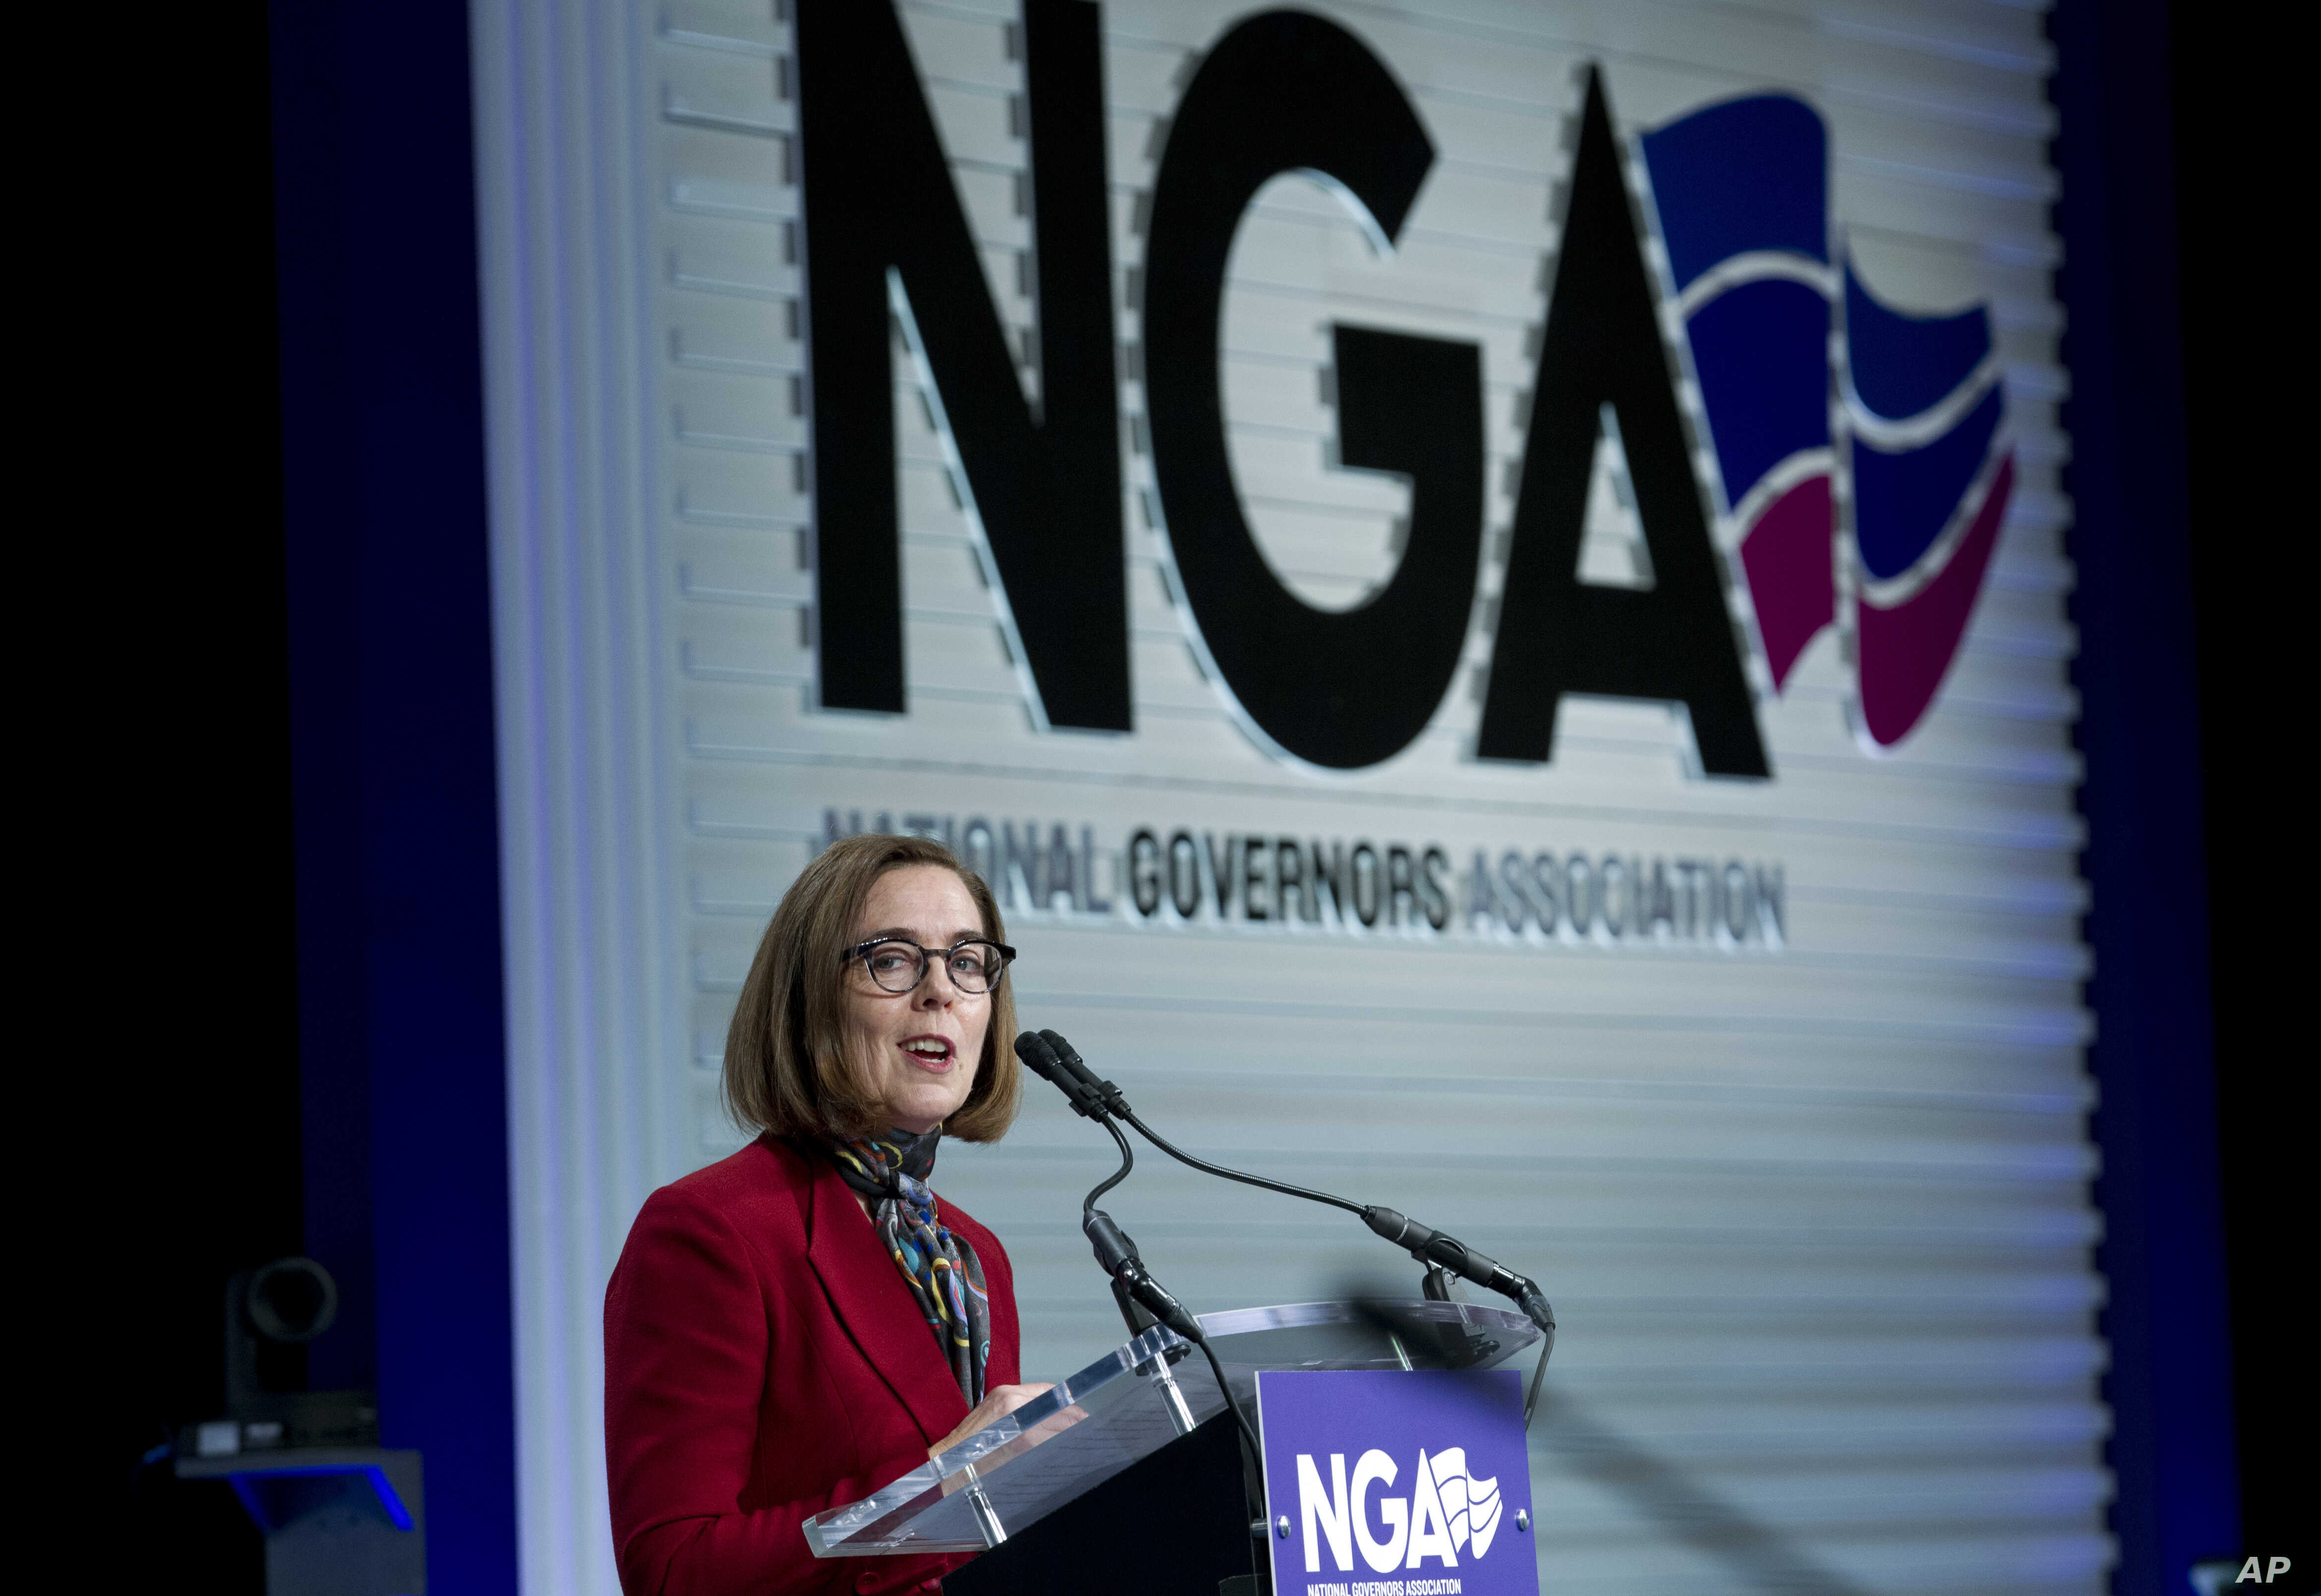 Oregon Gov. Kate Brown speaks at the National Governors Association 2019 winter meeting in Washington, Feb. 23, 2019.